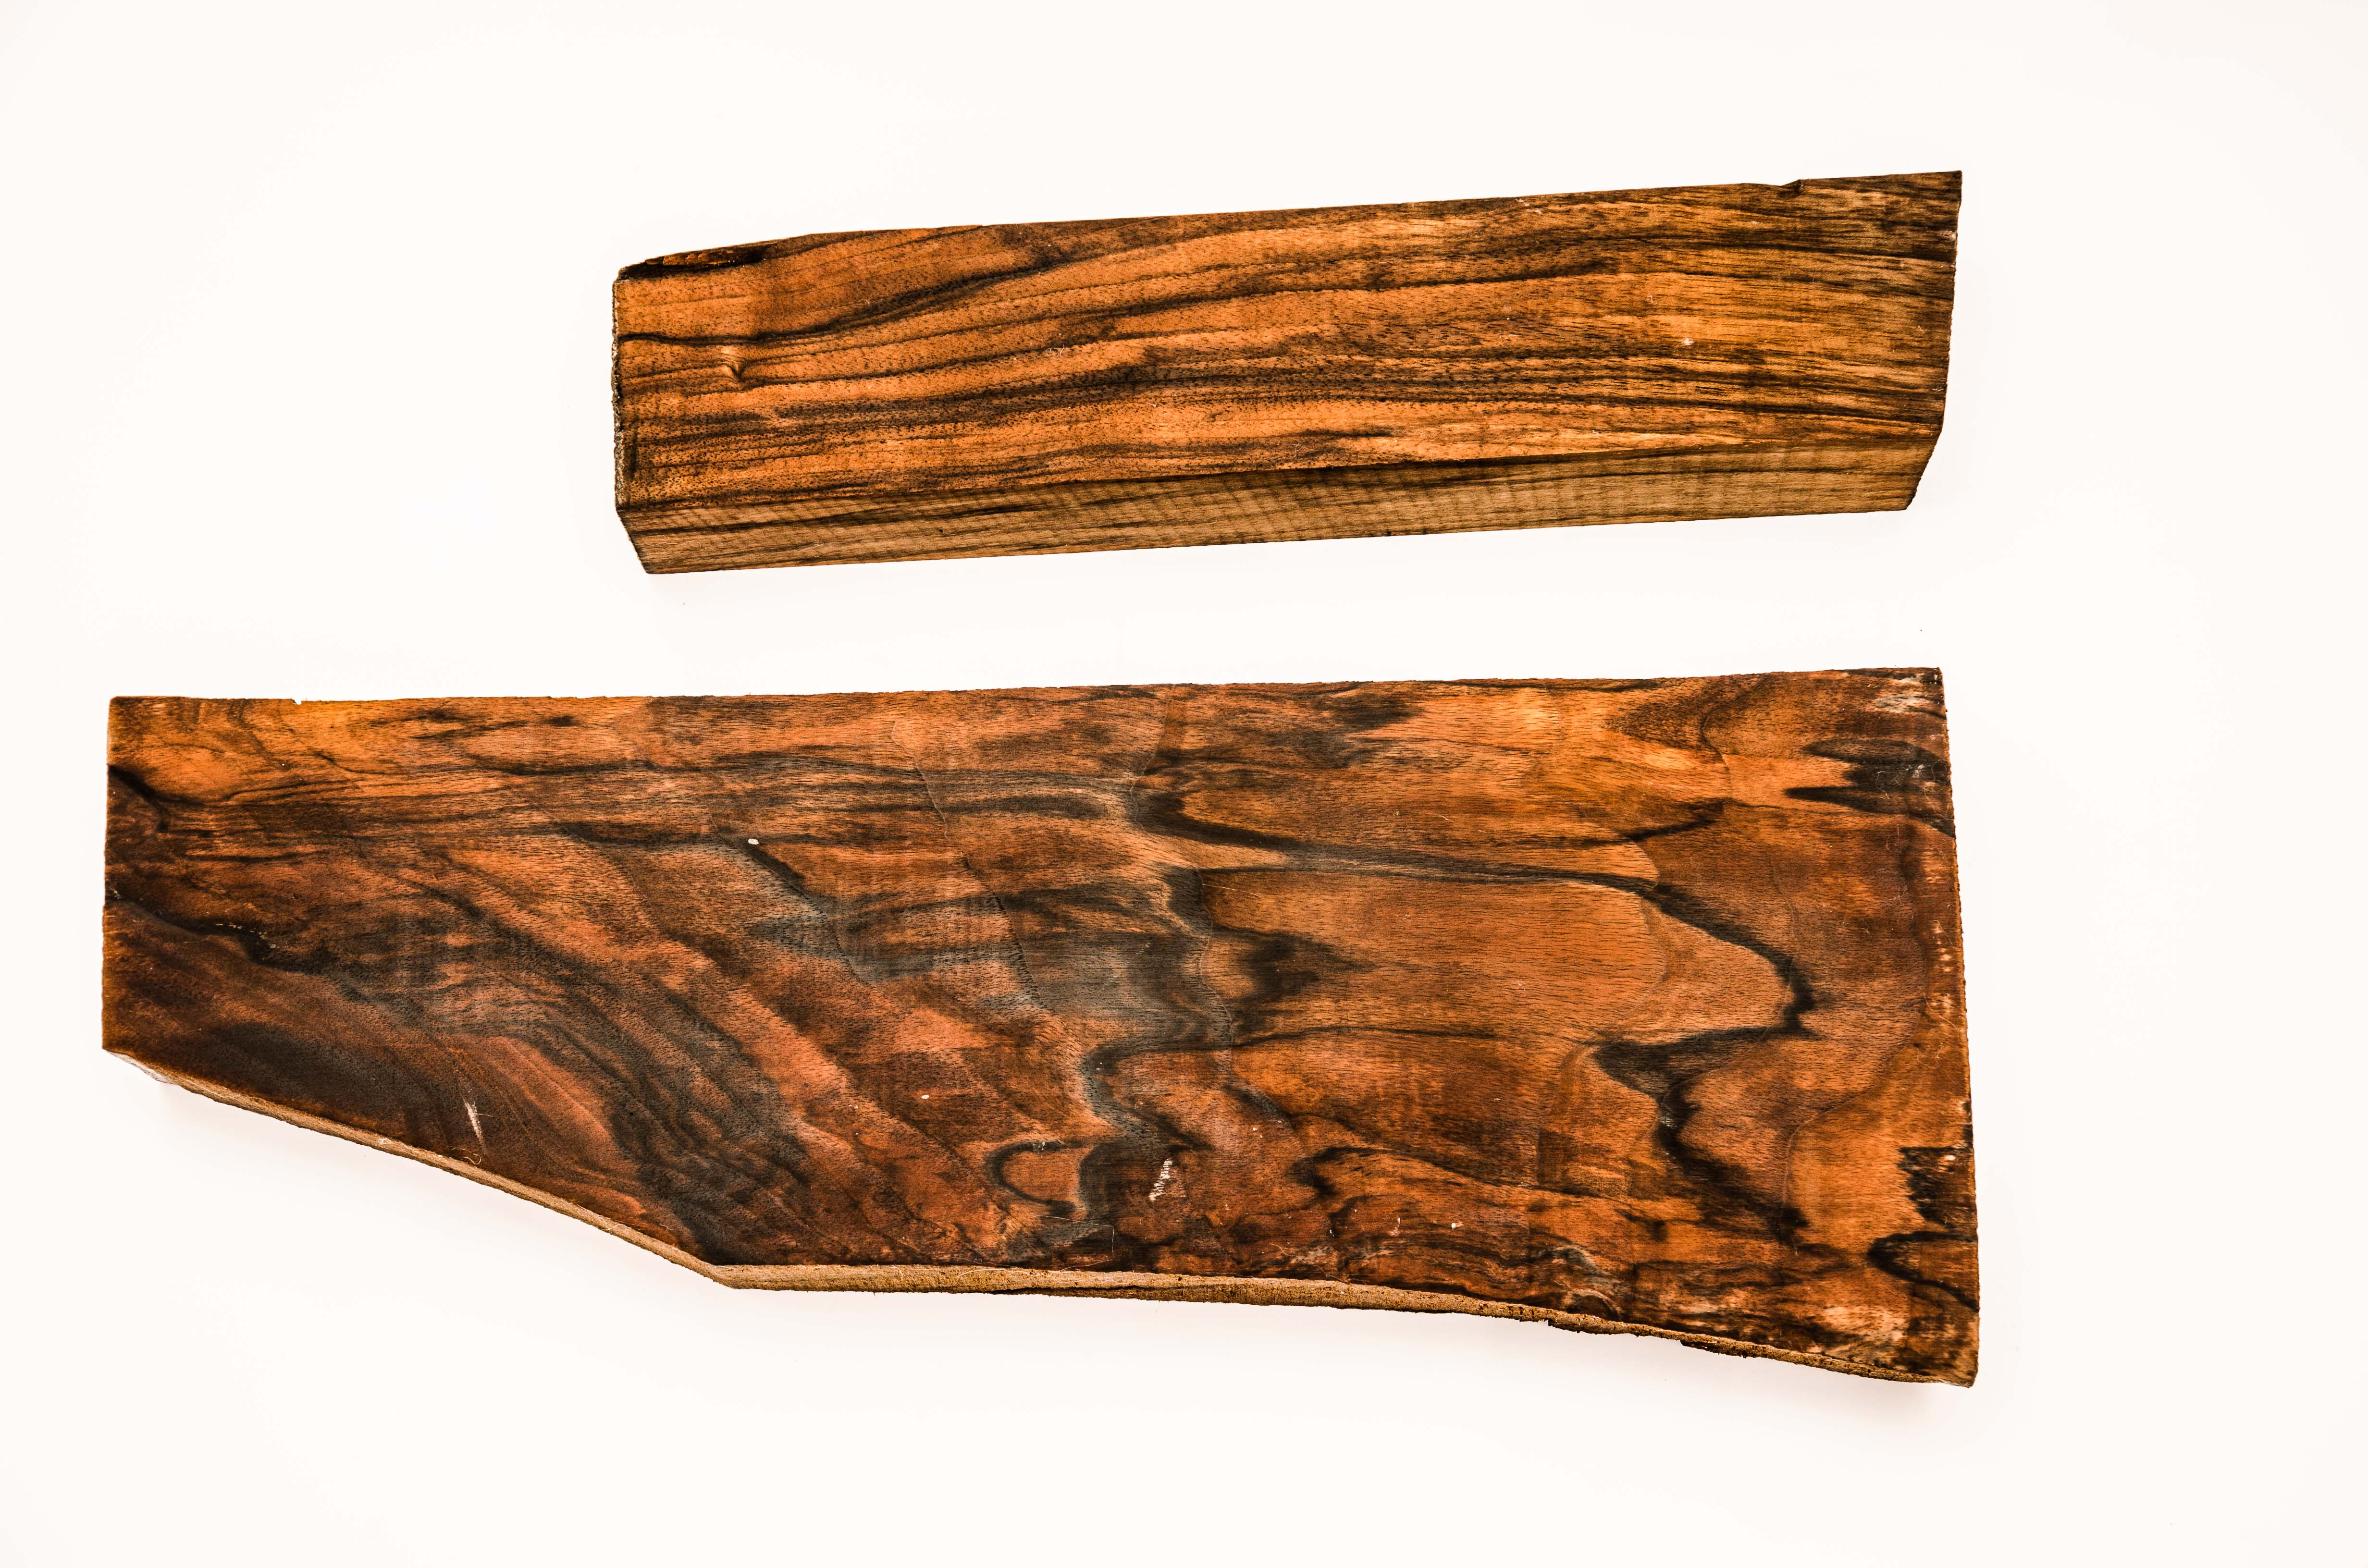 walnut_stock_blanks_for_guns_and_rifles-0443